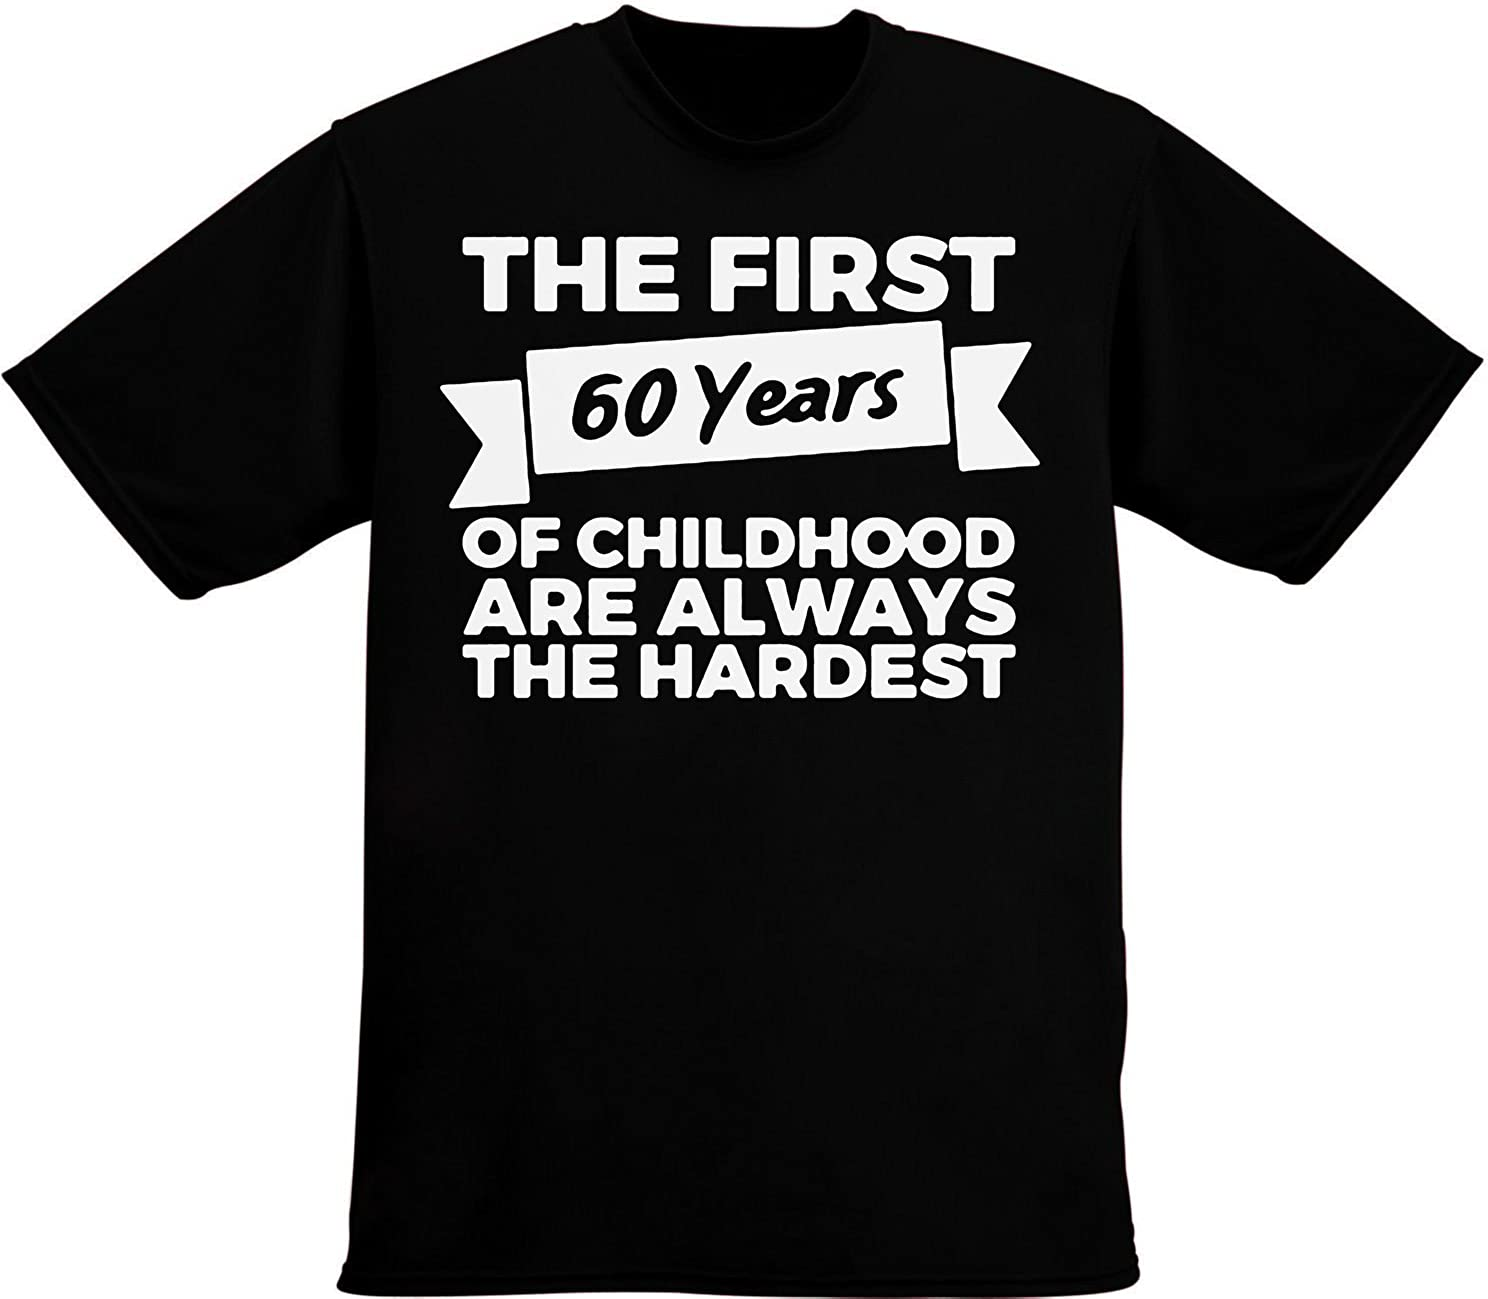 idcommerce The First 60 Years of Childhood are The Hardest Men's T-Shirt